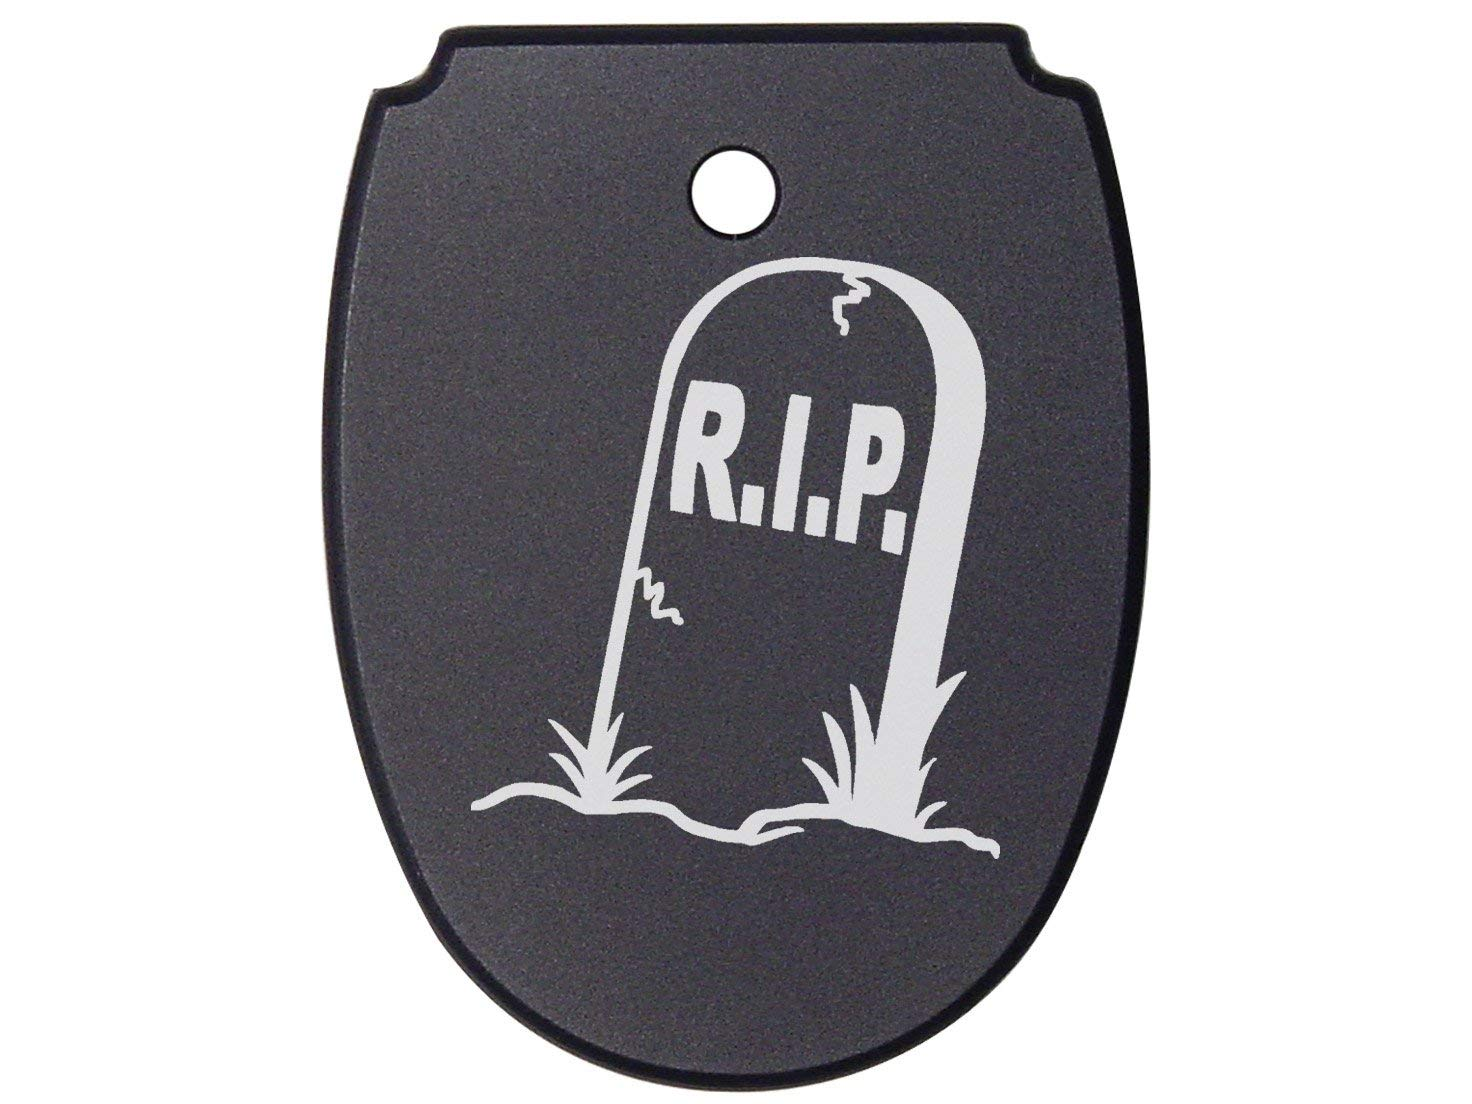 NDZ Performance For SIG SAUER P320 P250 Mag Plate Black .45 Only R.I.P. Tombstone Headstone